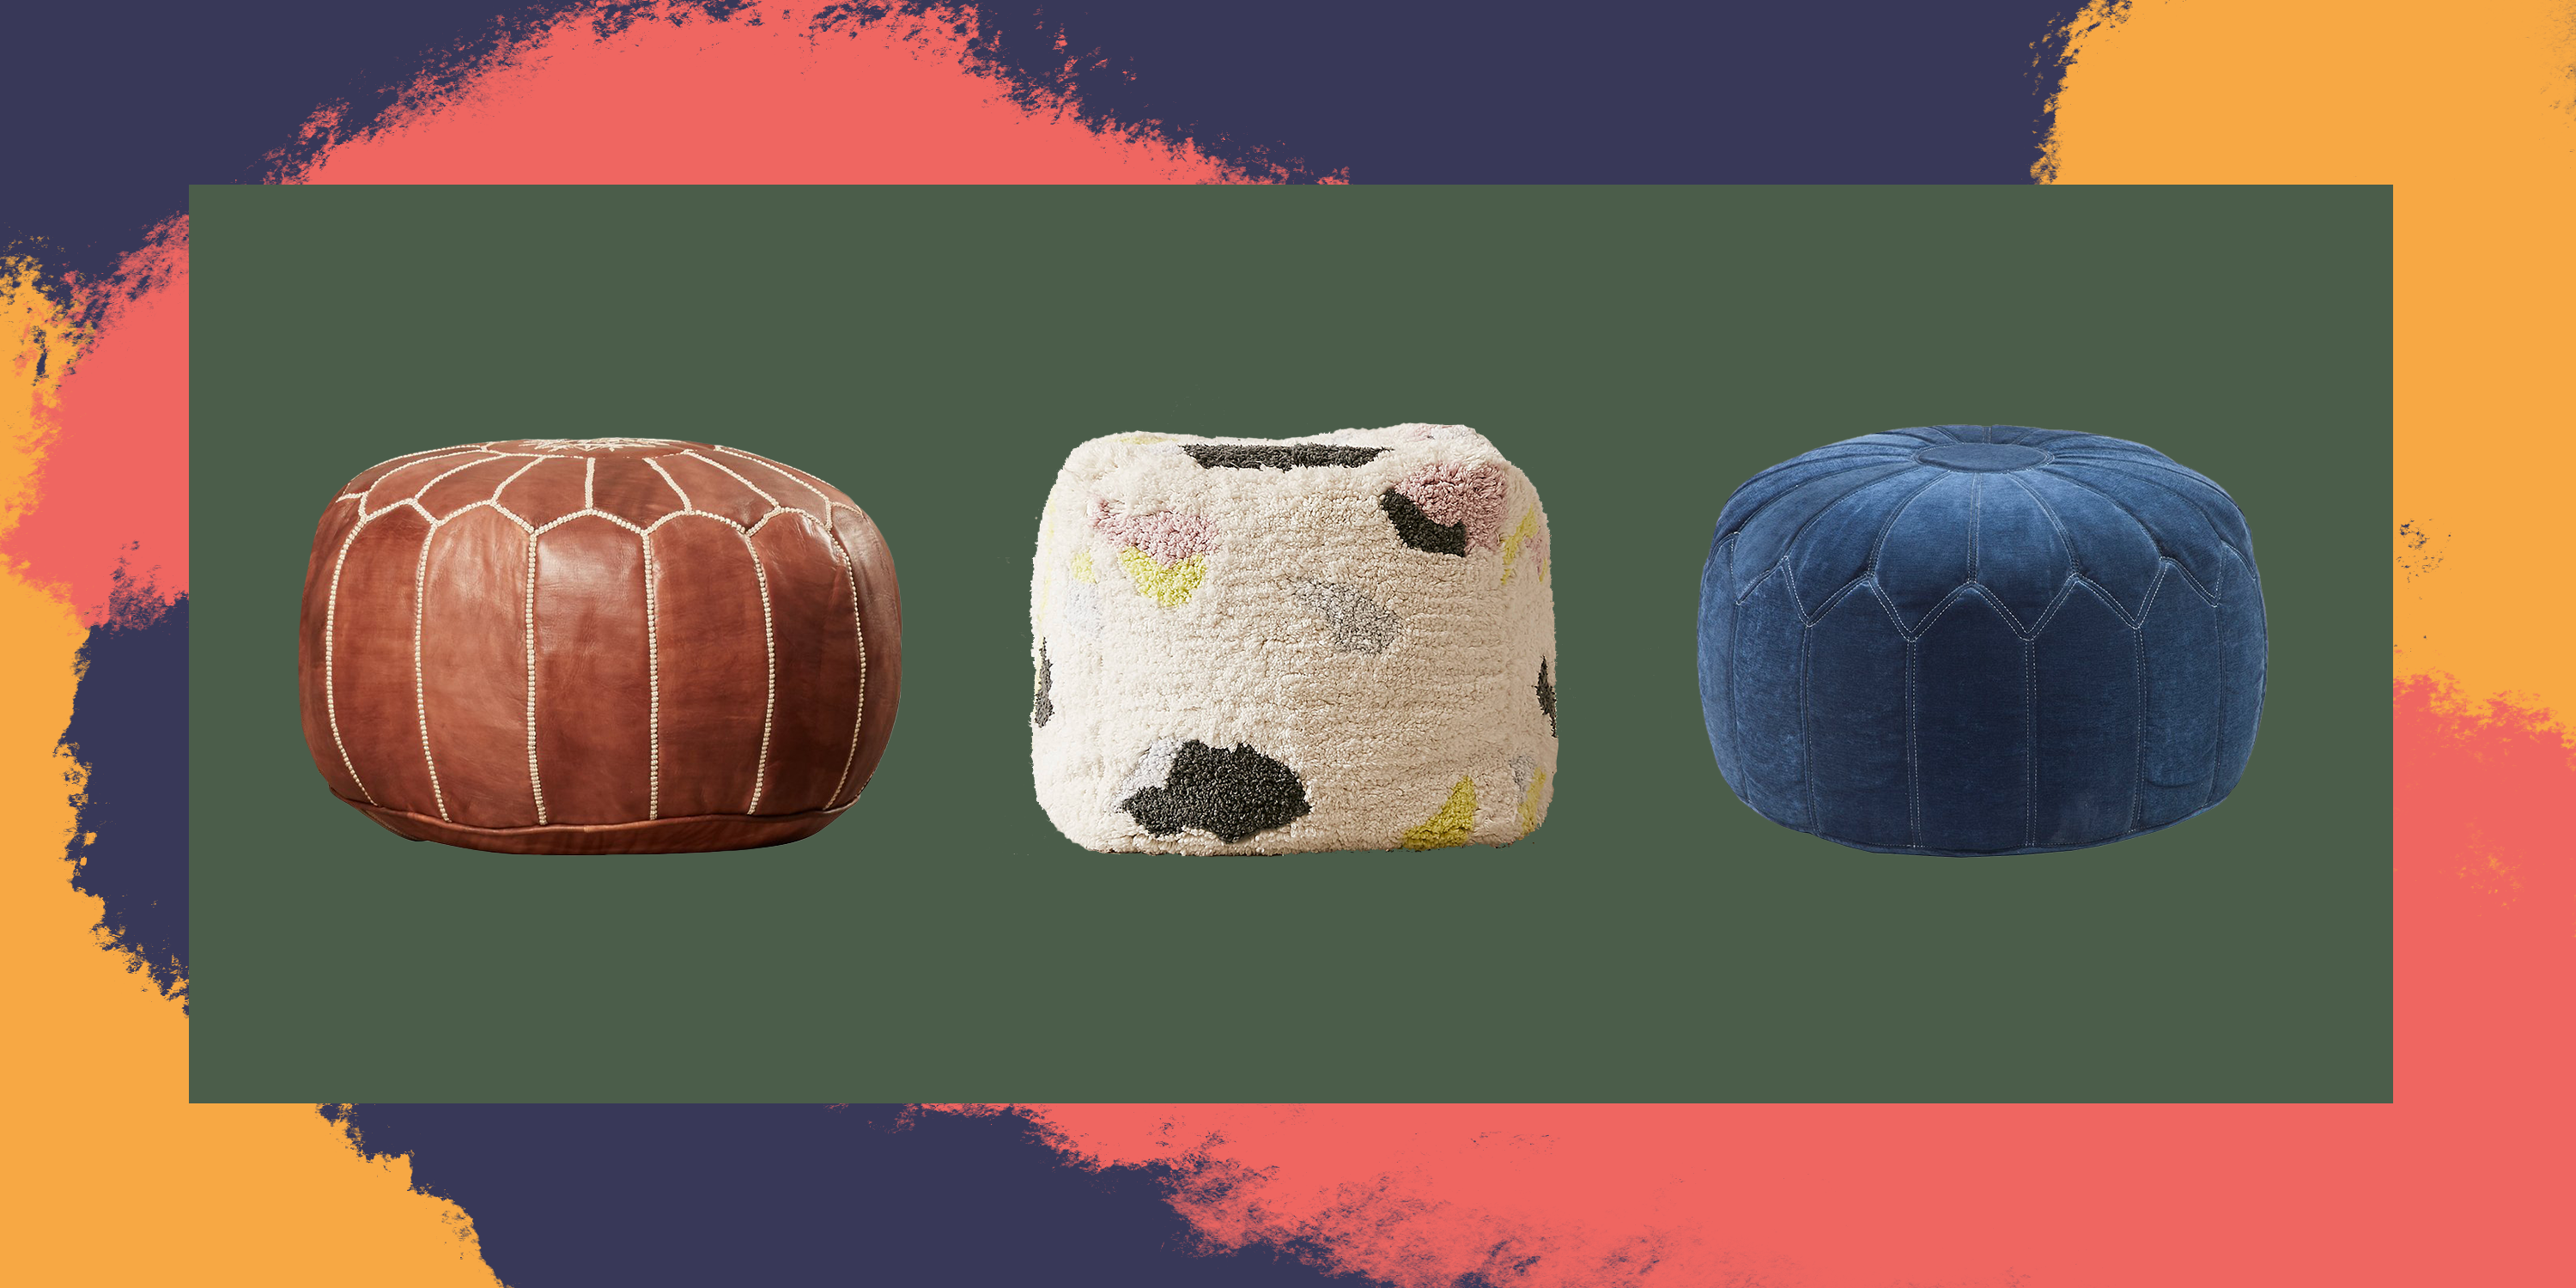 Superb 10 Most Comfortable Floor Poufs Stylish Poufs And Floor Gamerscity Chair Design For Home Gamerscityorg